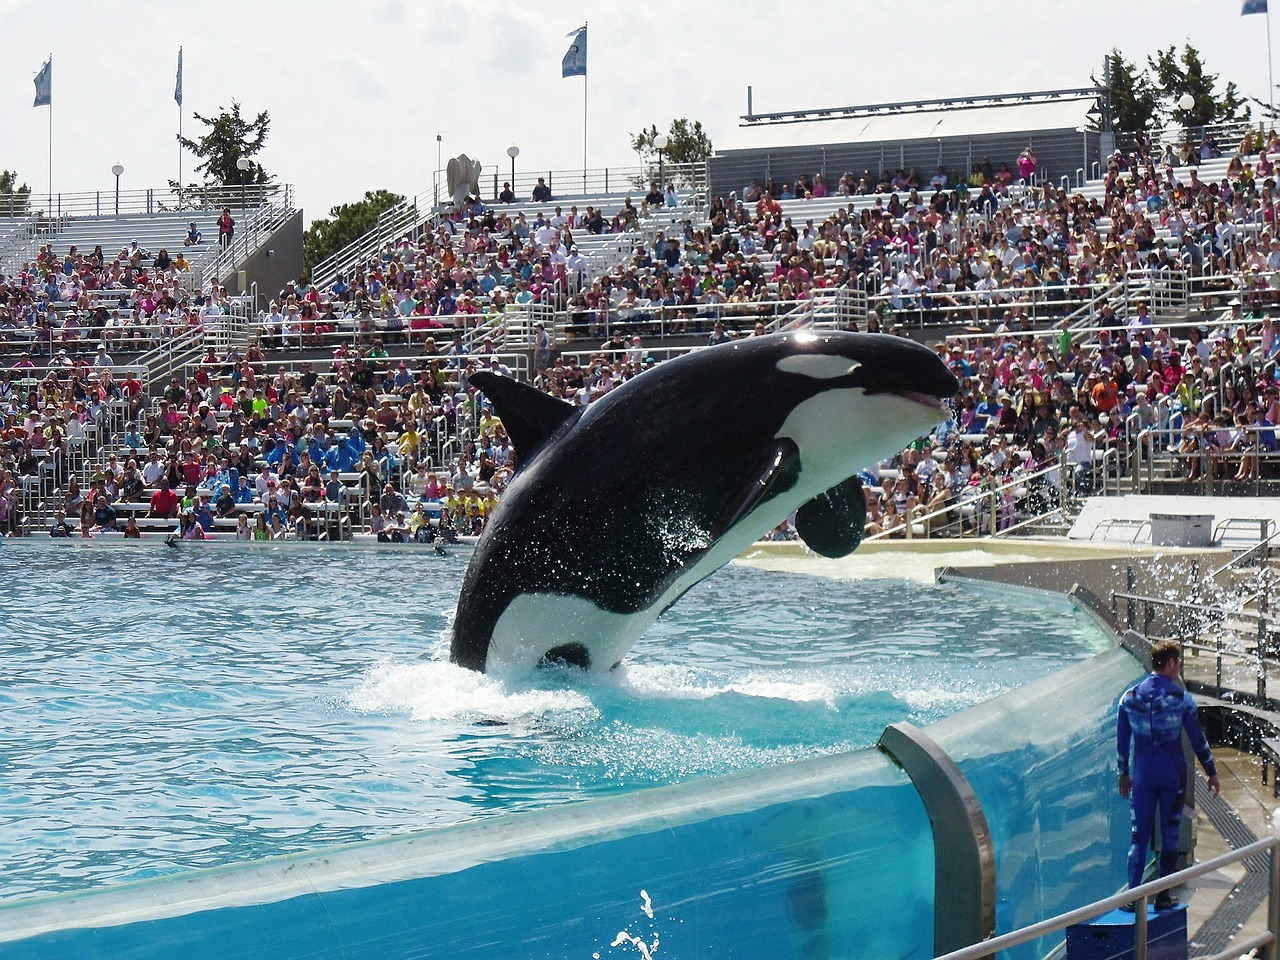 Orca Whale in Captivity